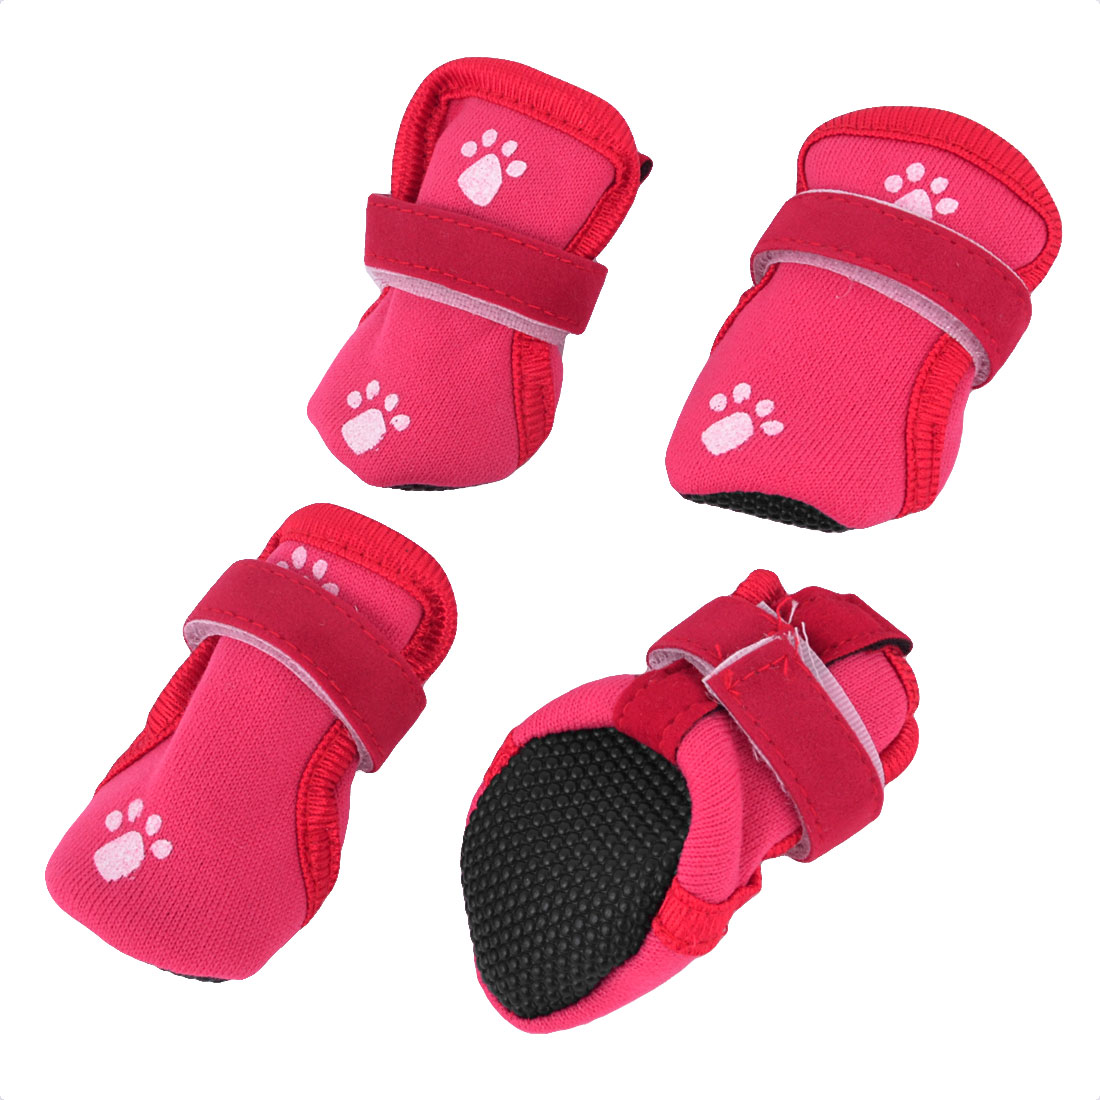 2 Pairs Paw Print Detachable Closure Pet Dog Puppy Booties Shoes Red XS